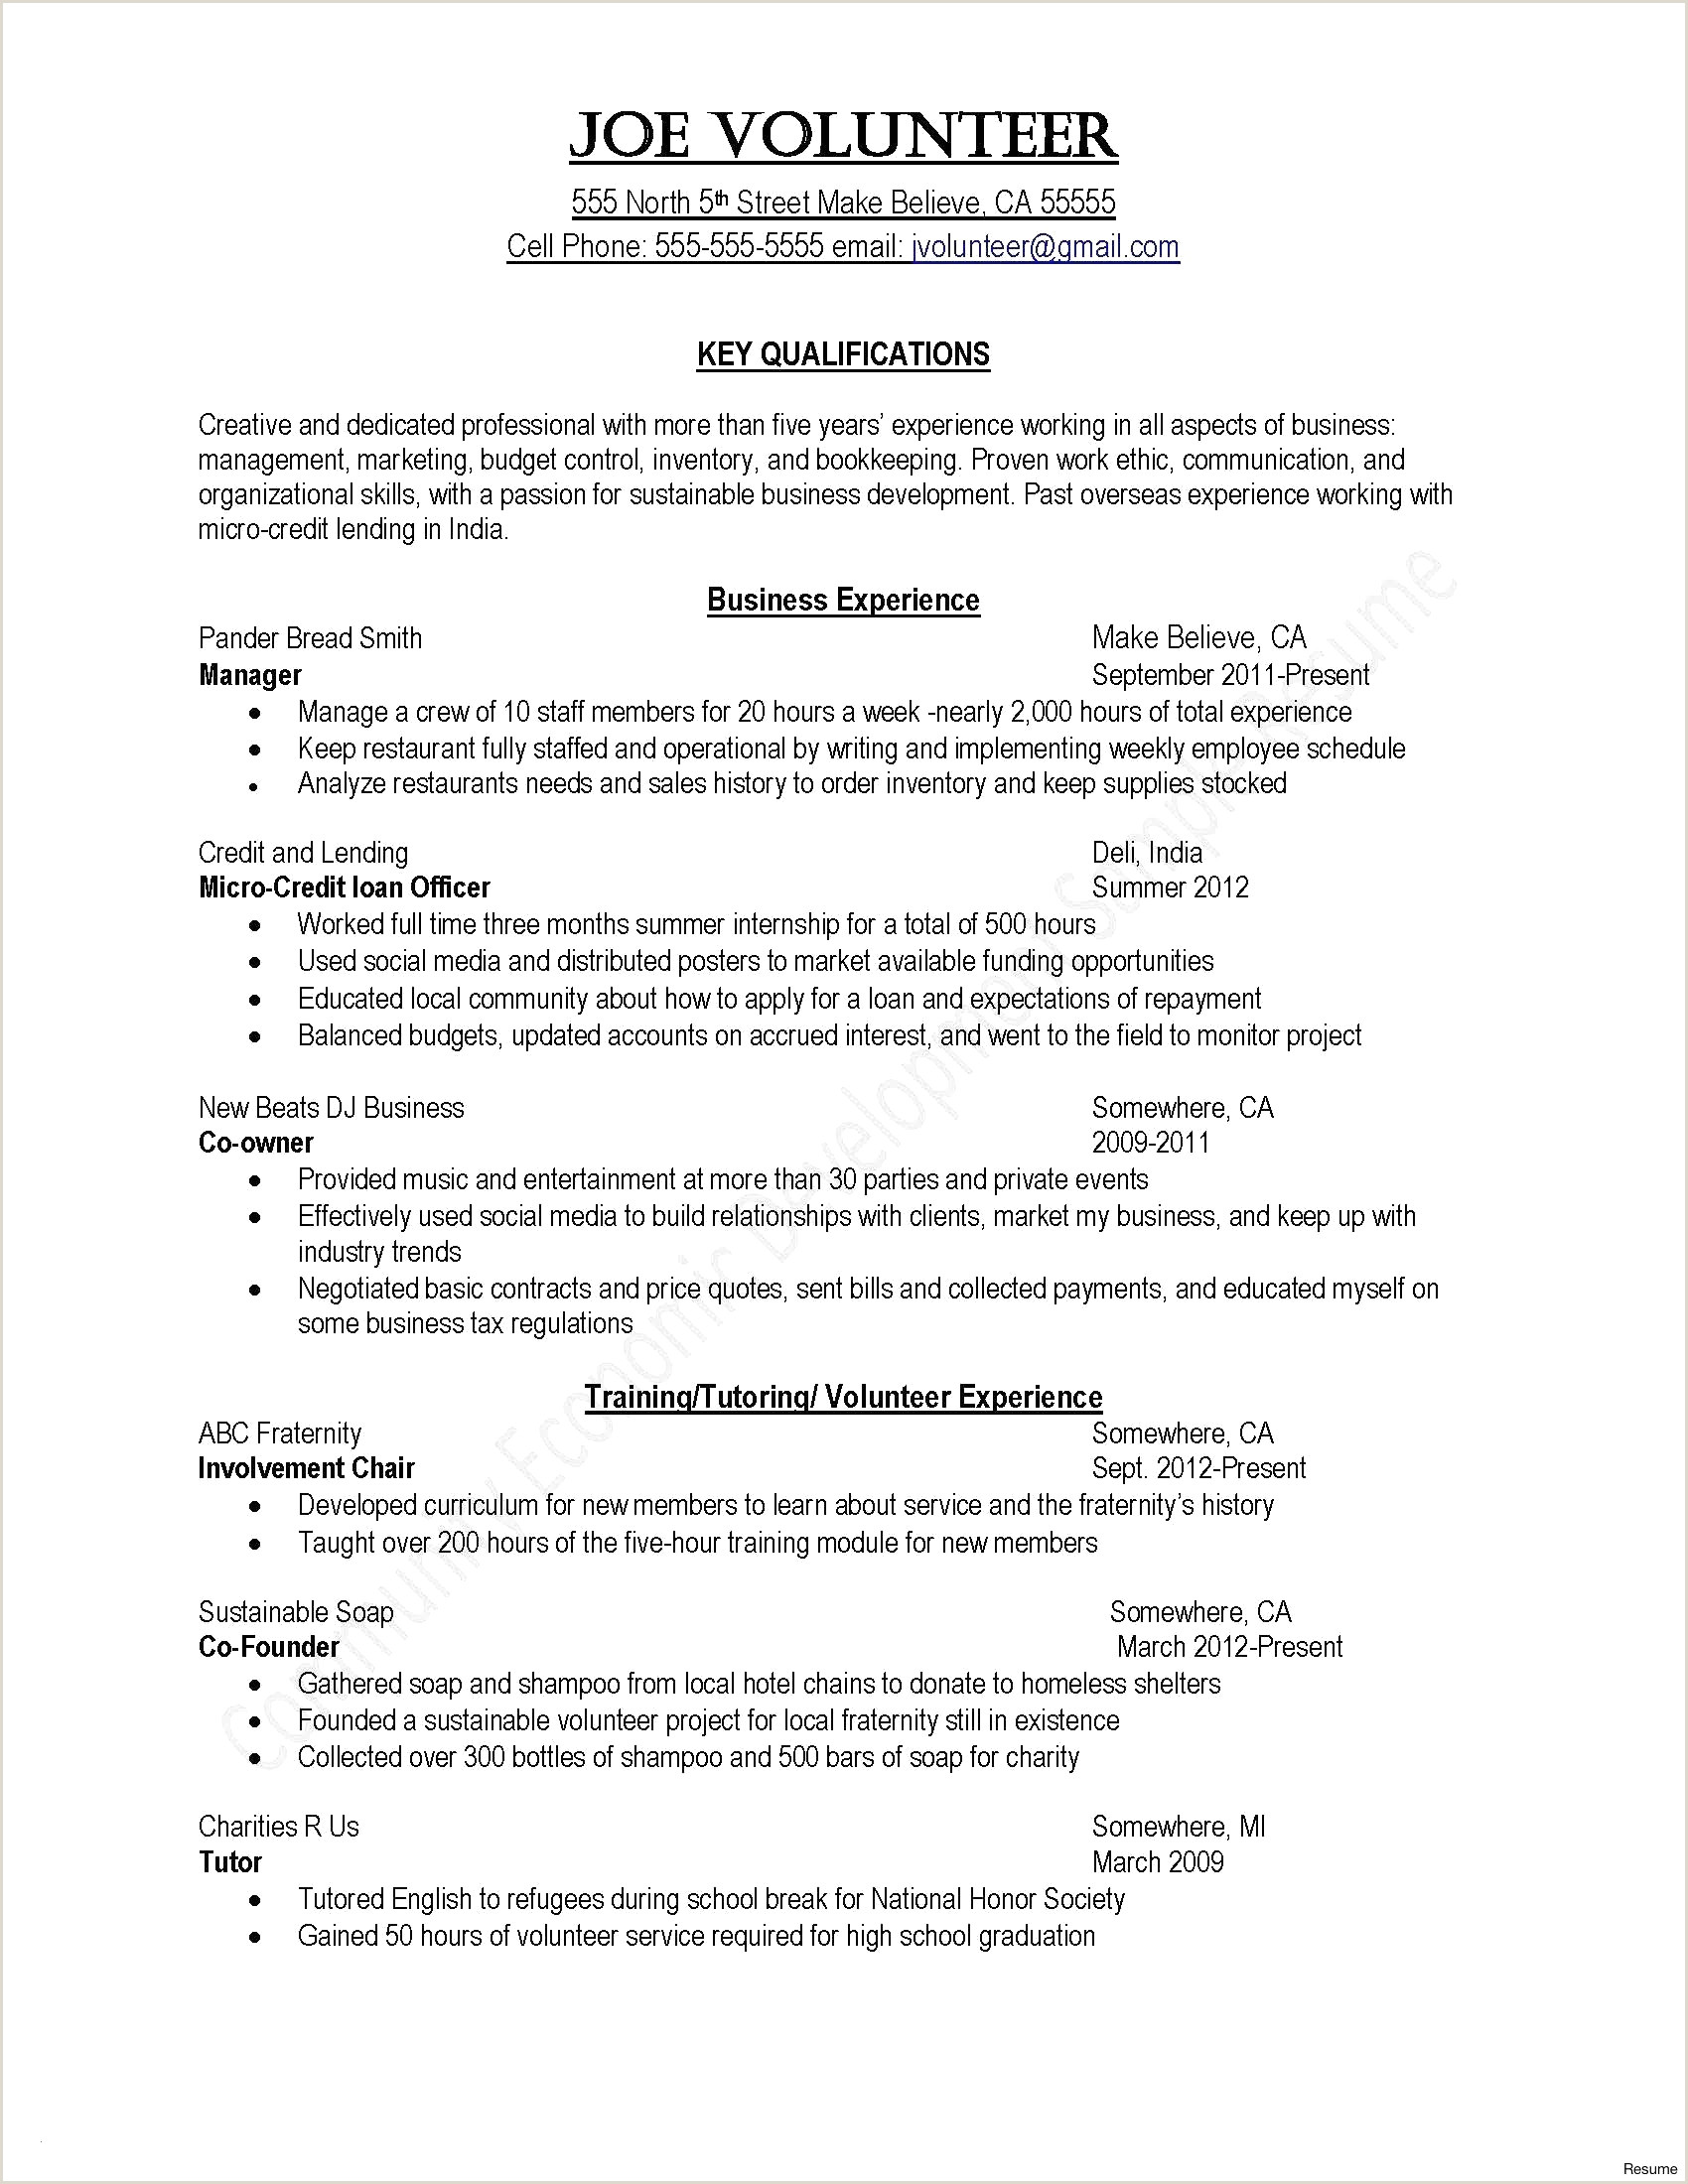 Key Components Of A Resume 10 Packing Job Description for Resume